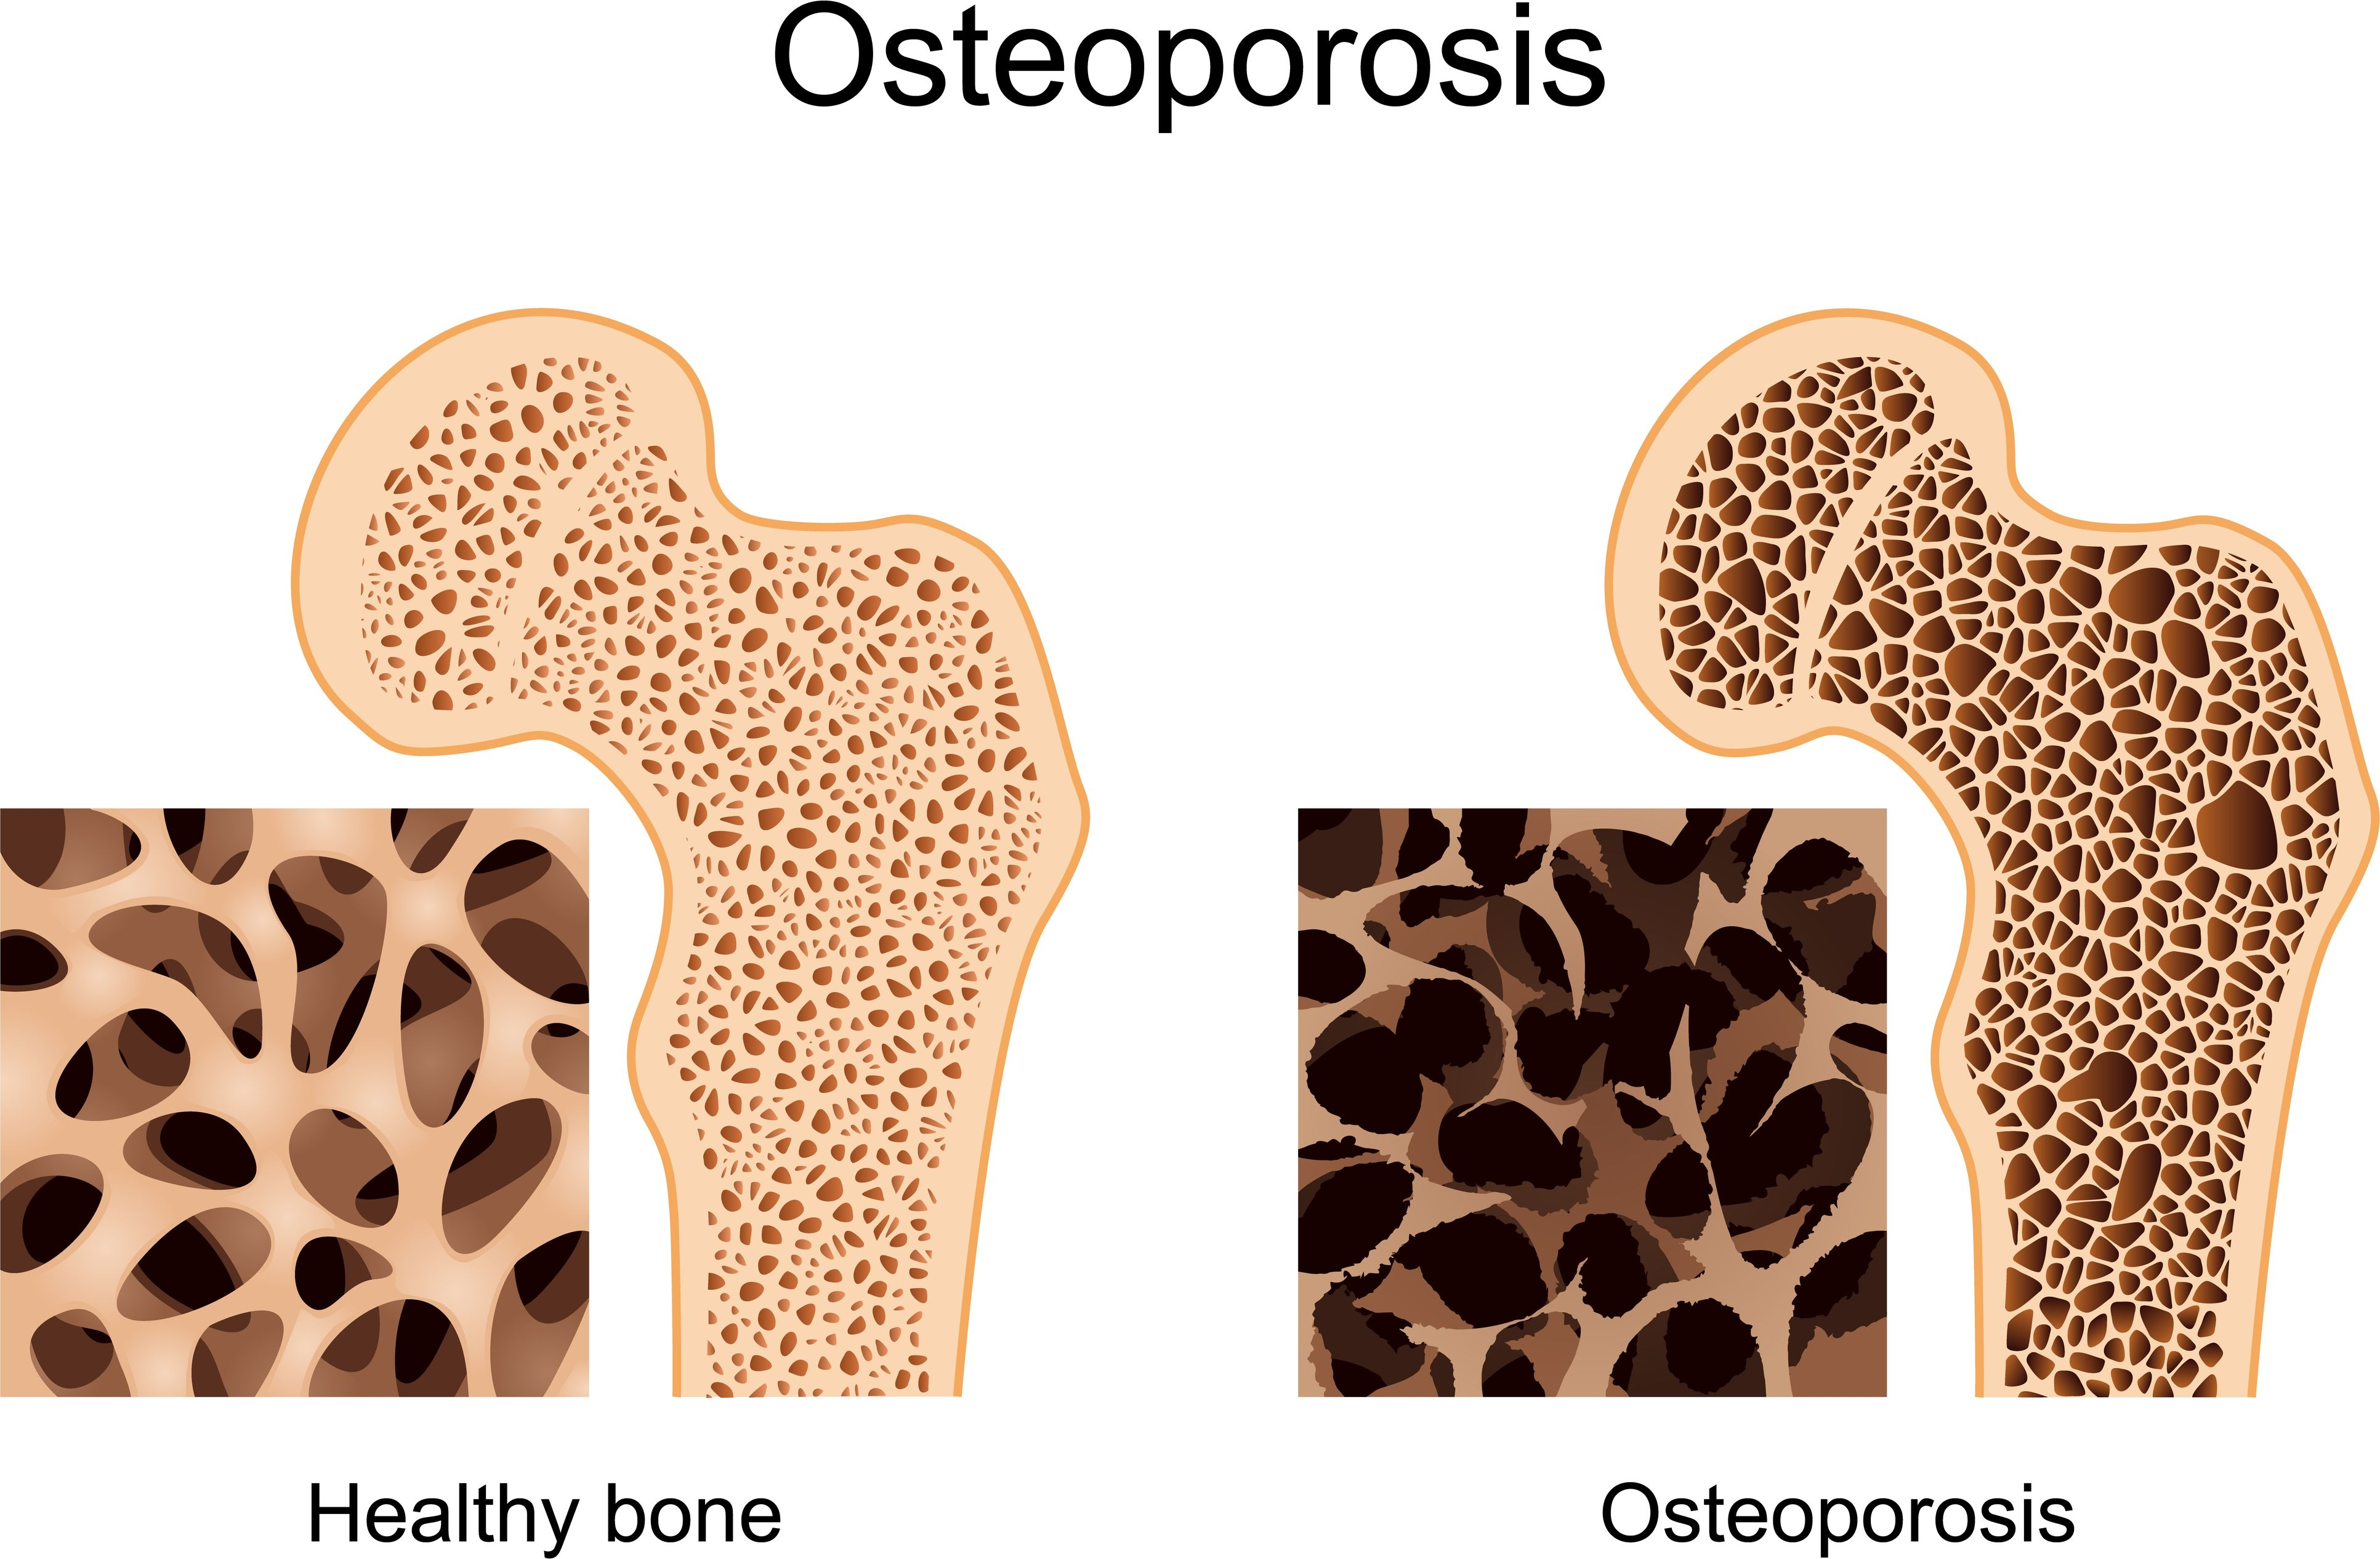 18++ Does osteoporosis run in families viral